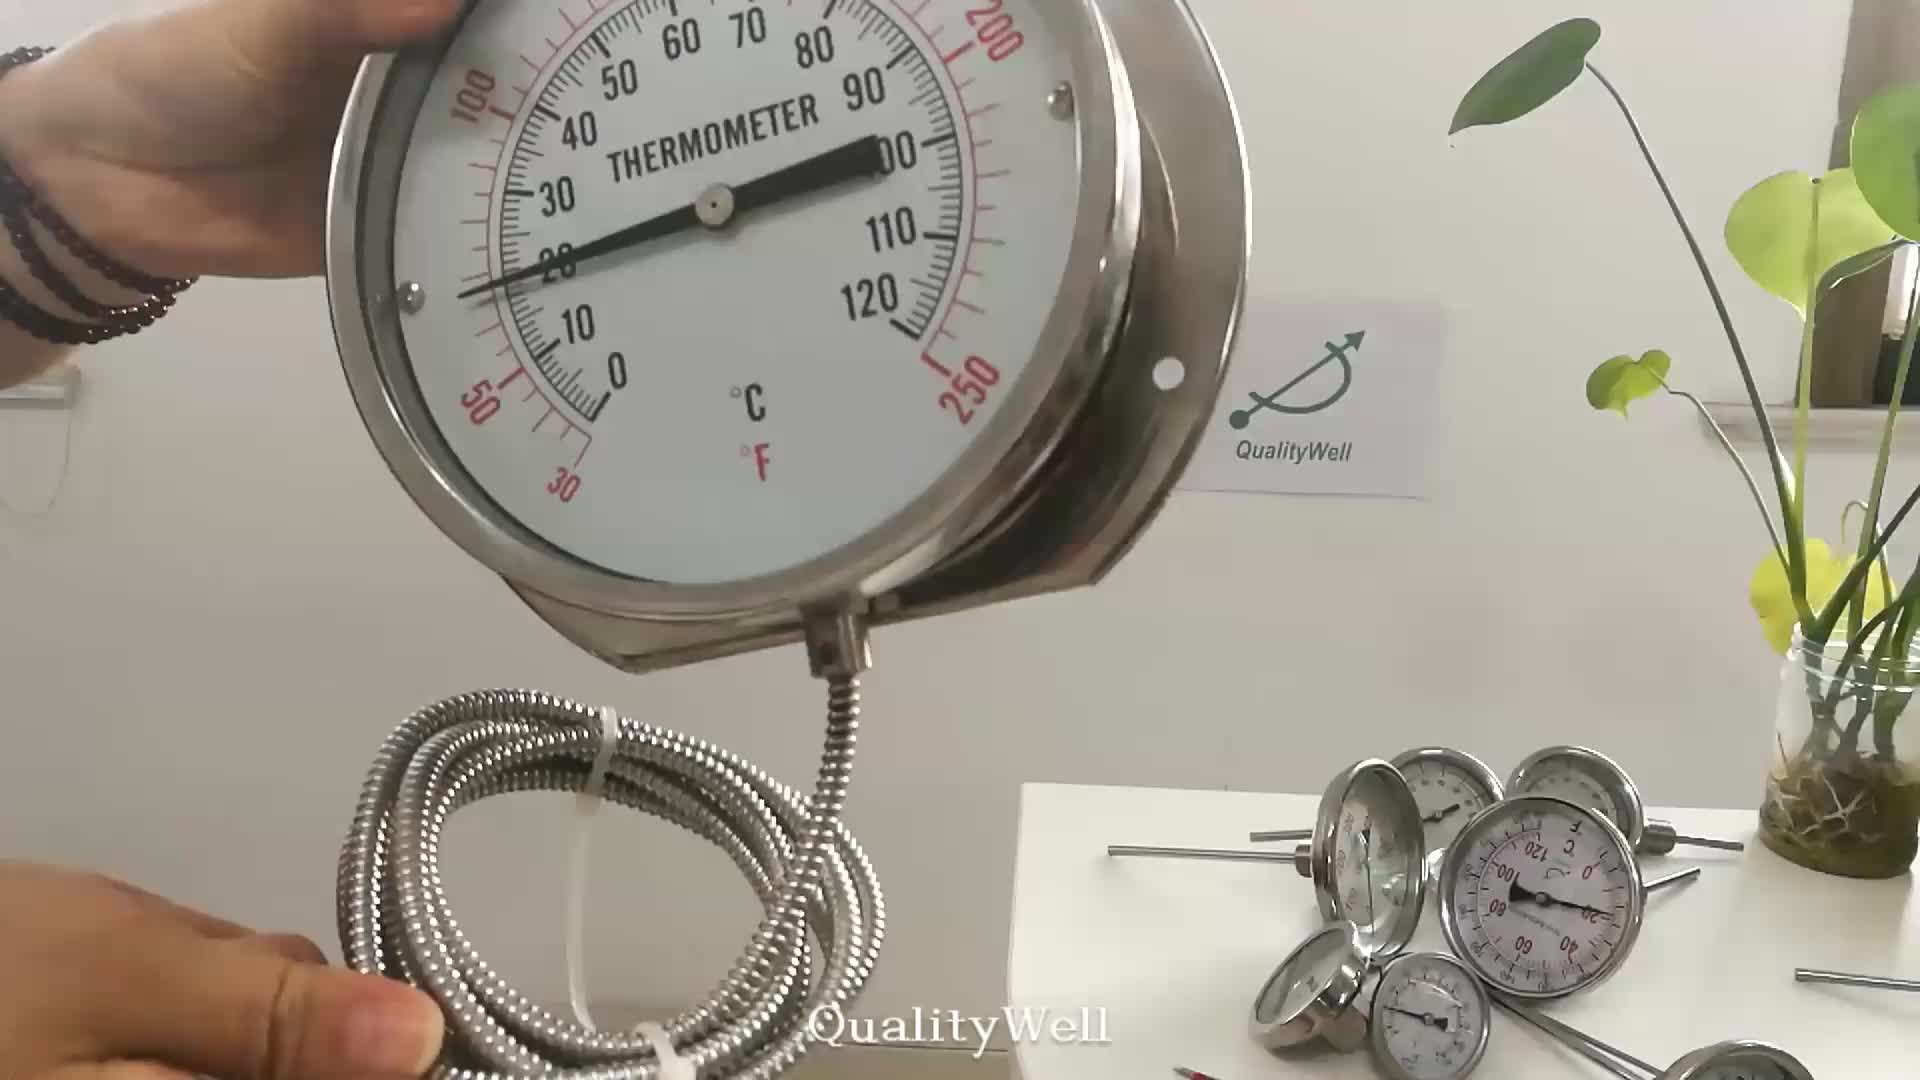 Capillary Thermometer To Measure Temperature